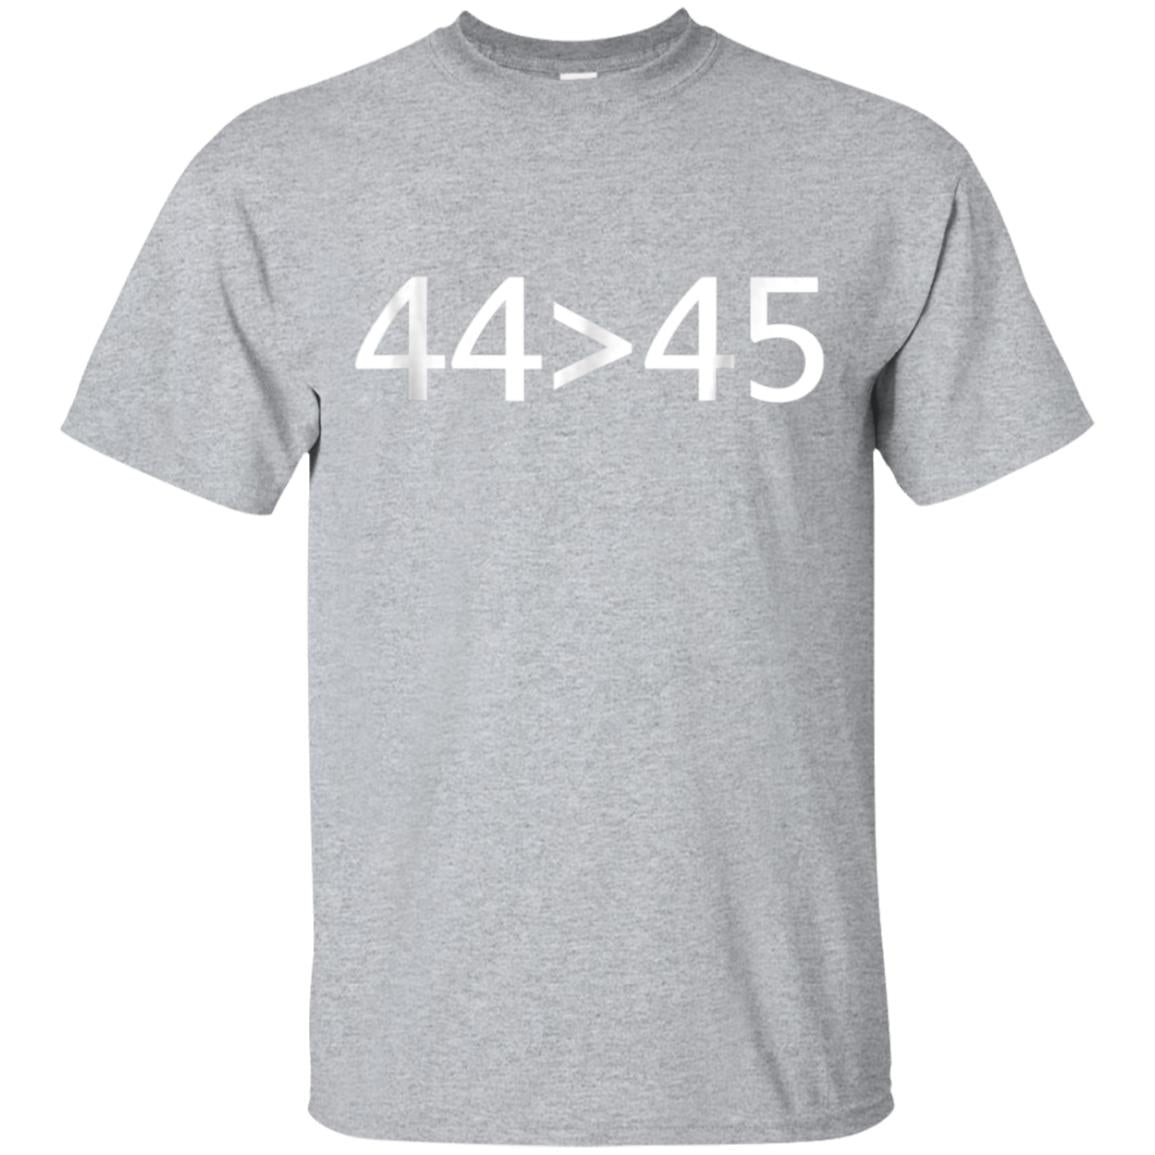 44  45 The 44th President is Greater Than 45th T-Shirt 99promocode